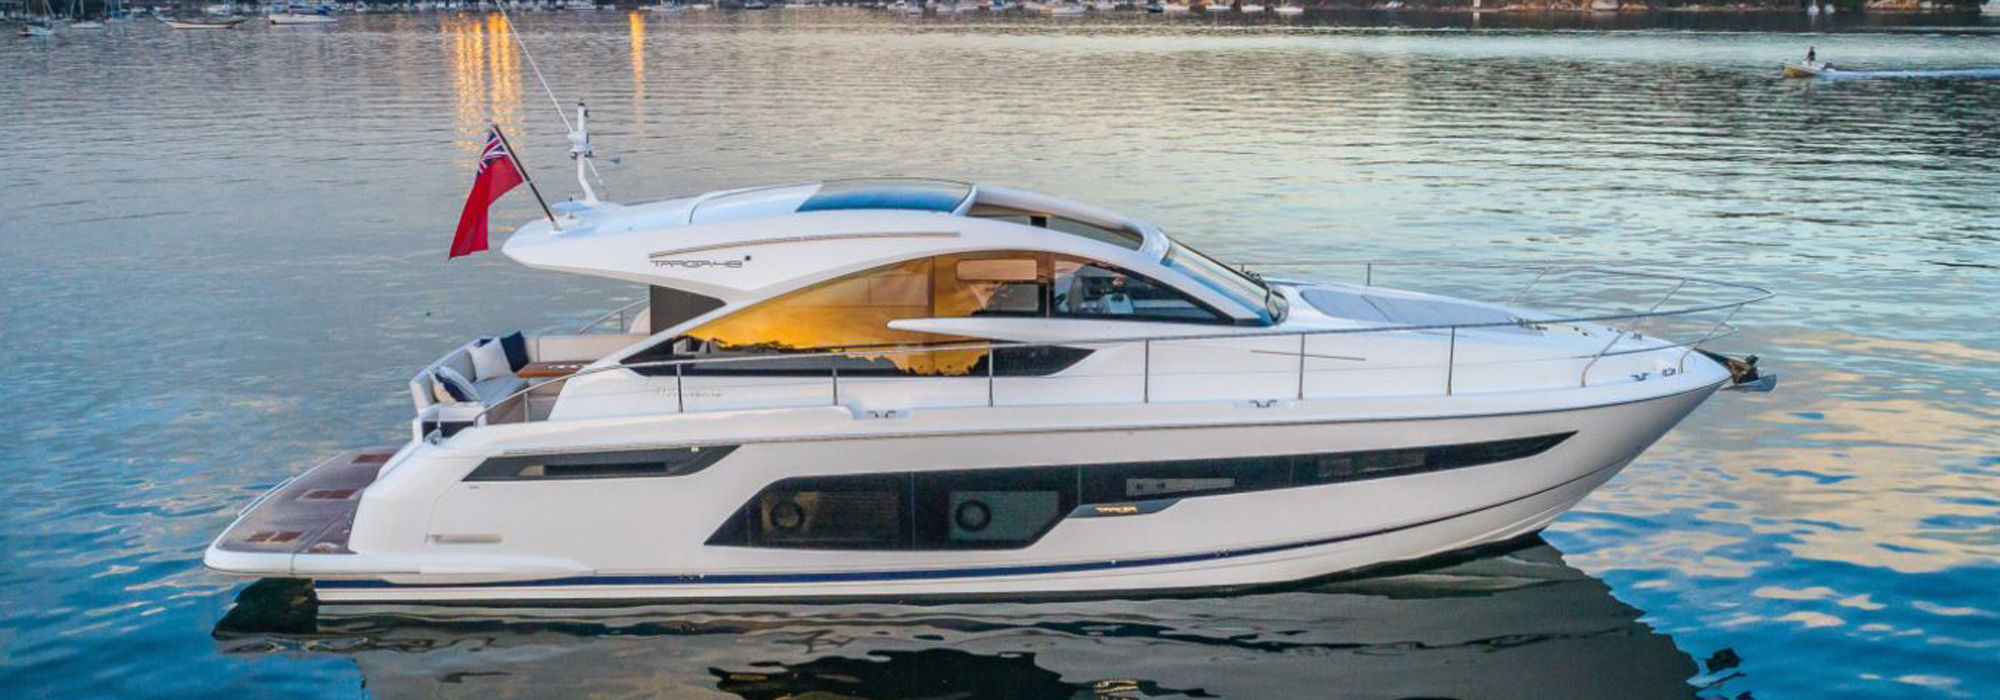 Fairline Targa 48 GT Express Cruiser Yacht